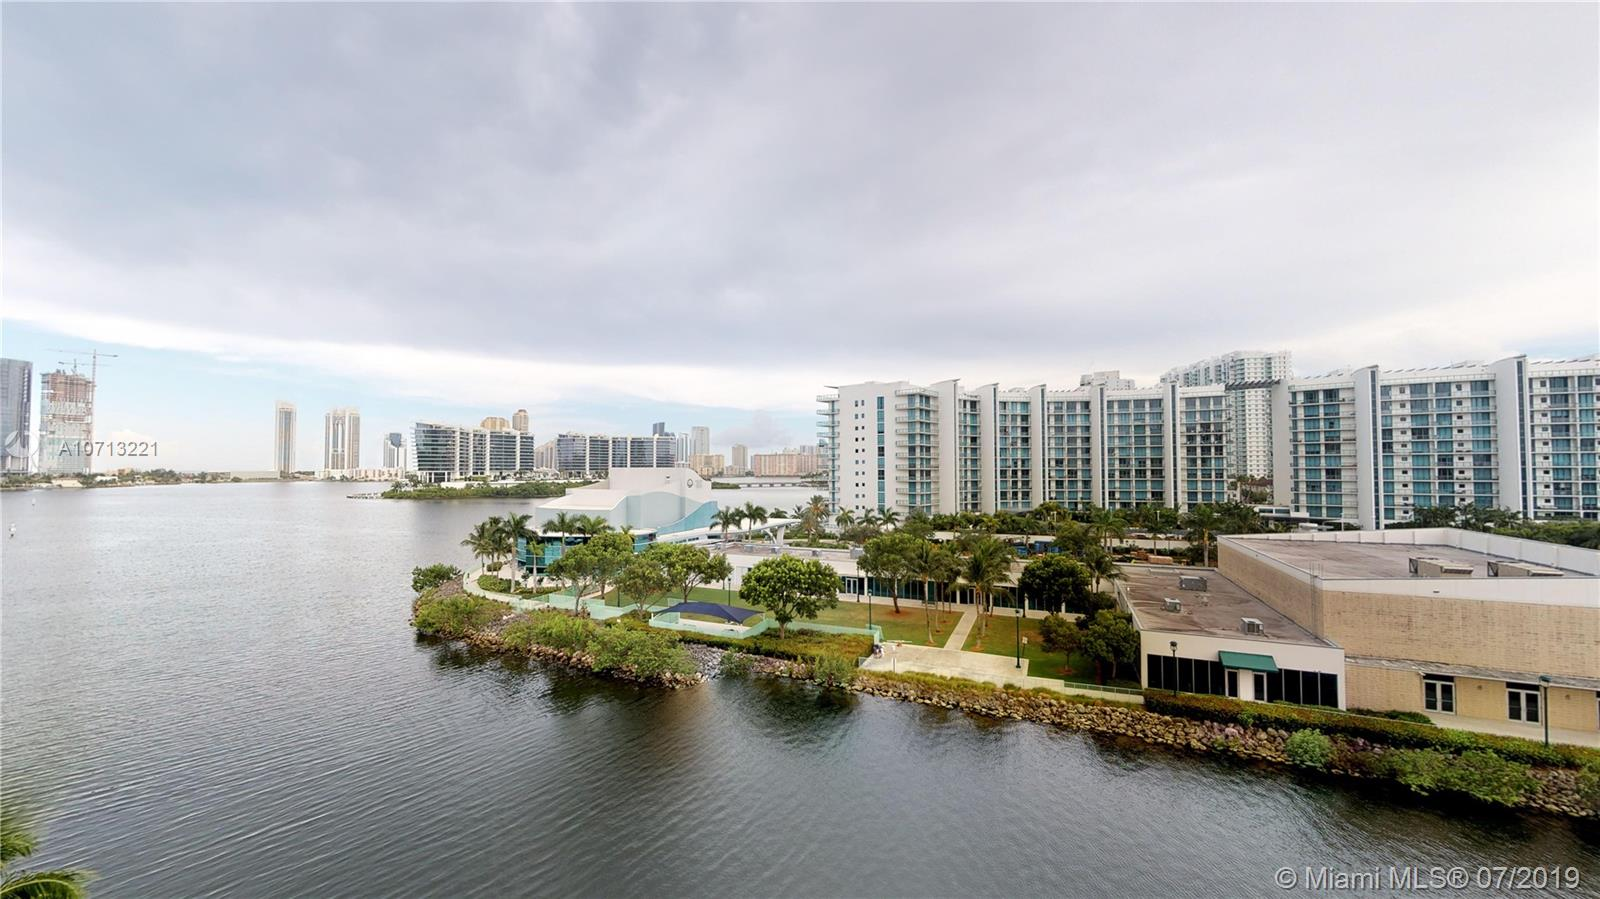 3332 NE 190th St #717 For Sale A10713221, FL